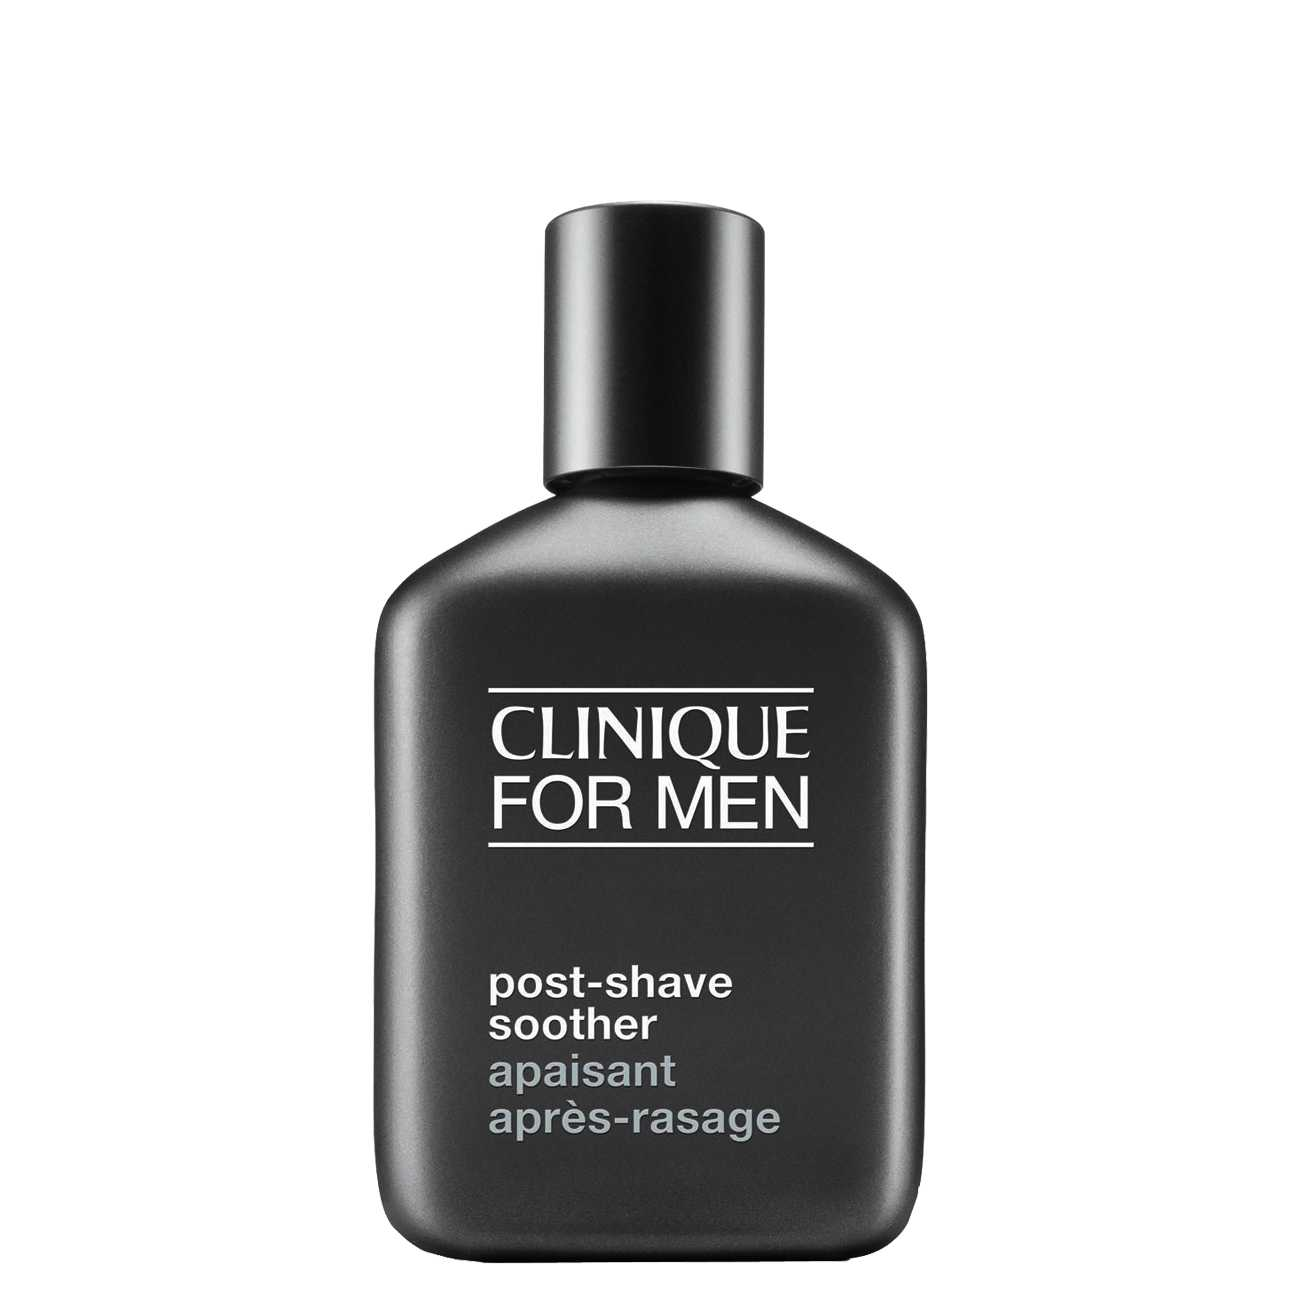 For Men Post-Shave Soother 75 Ml Clinique imagine 2021 bestvalue.eu